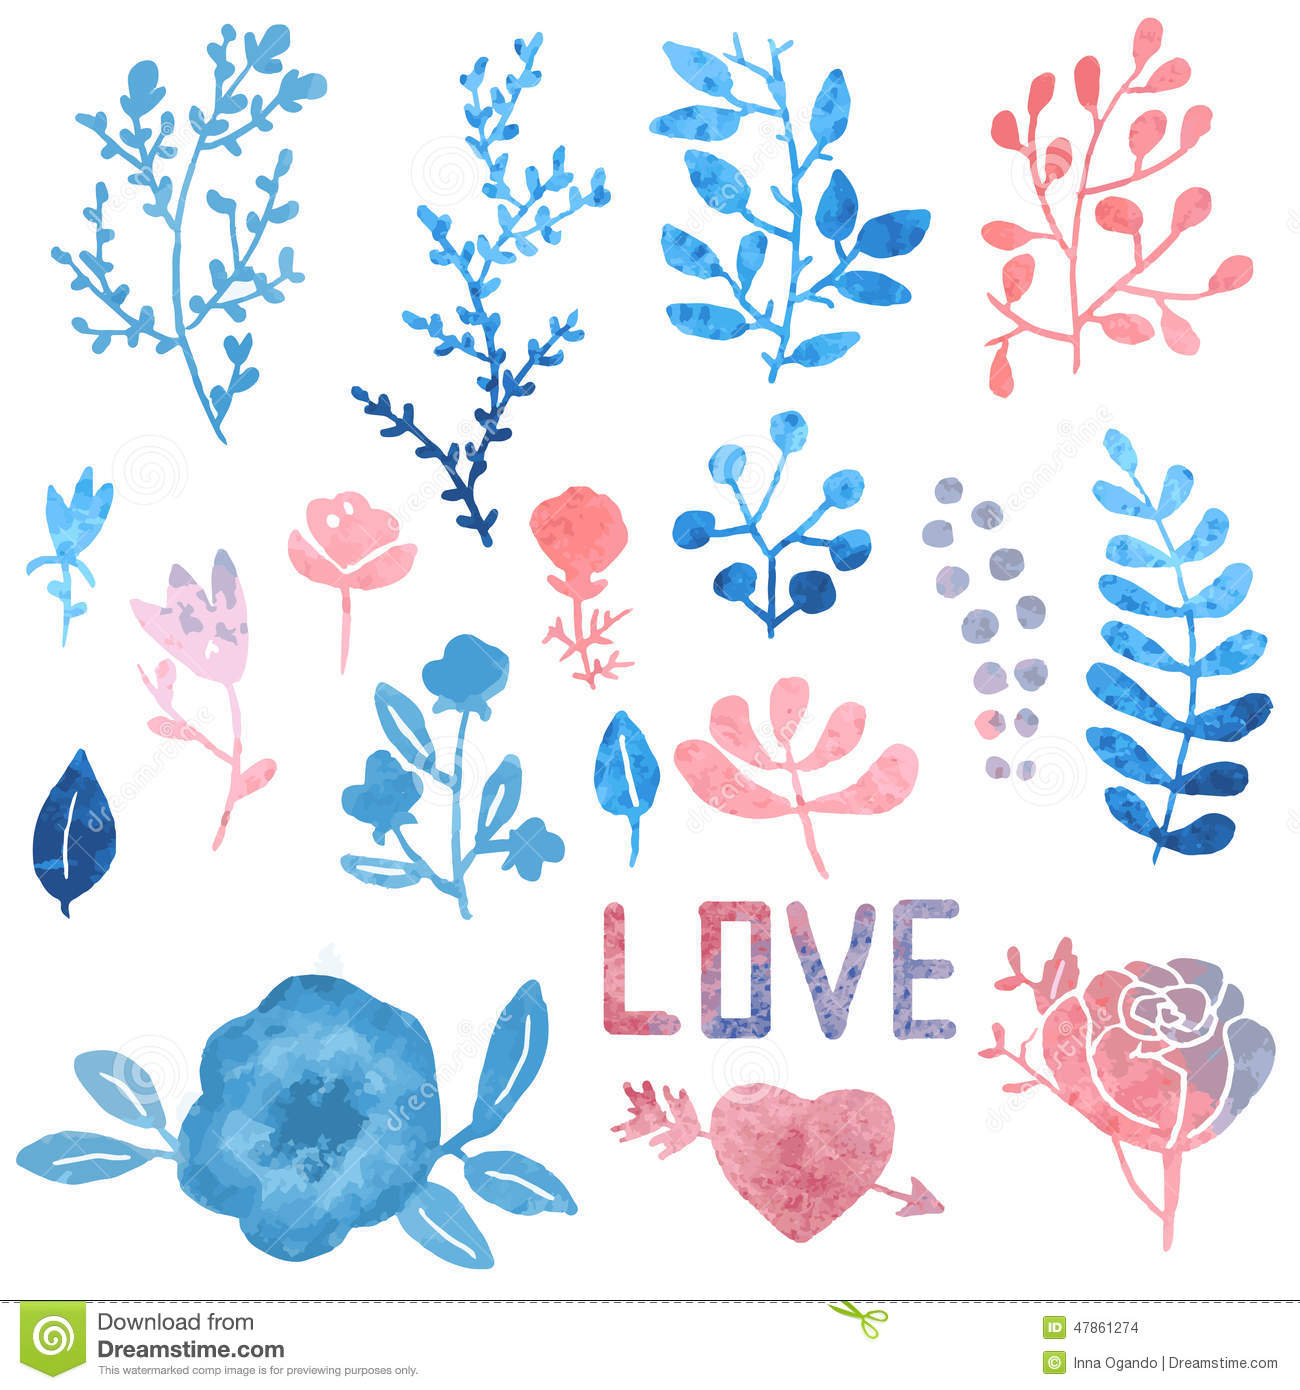 Watercolor clipart clipart black and white library Watercolor Nature Clip Art. Stock Vector - Image: 47861286 clipart black and white library